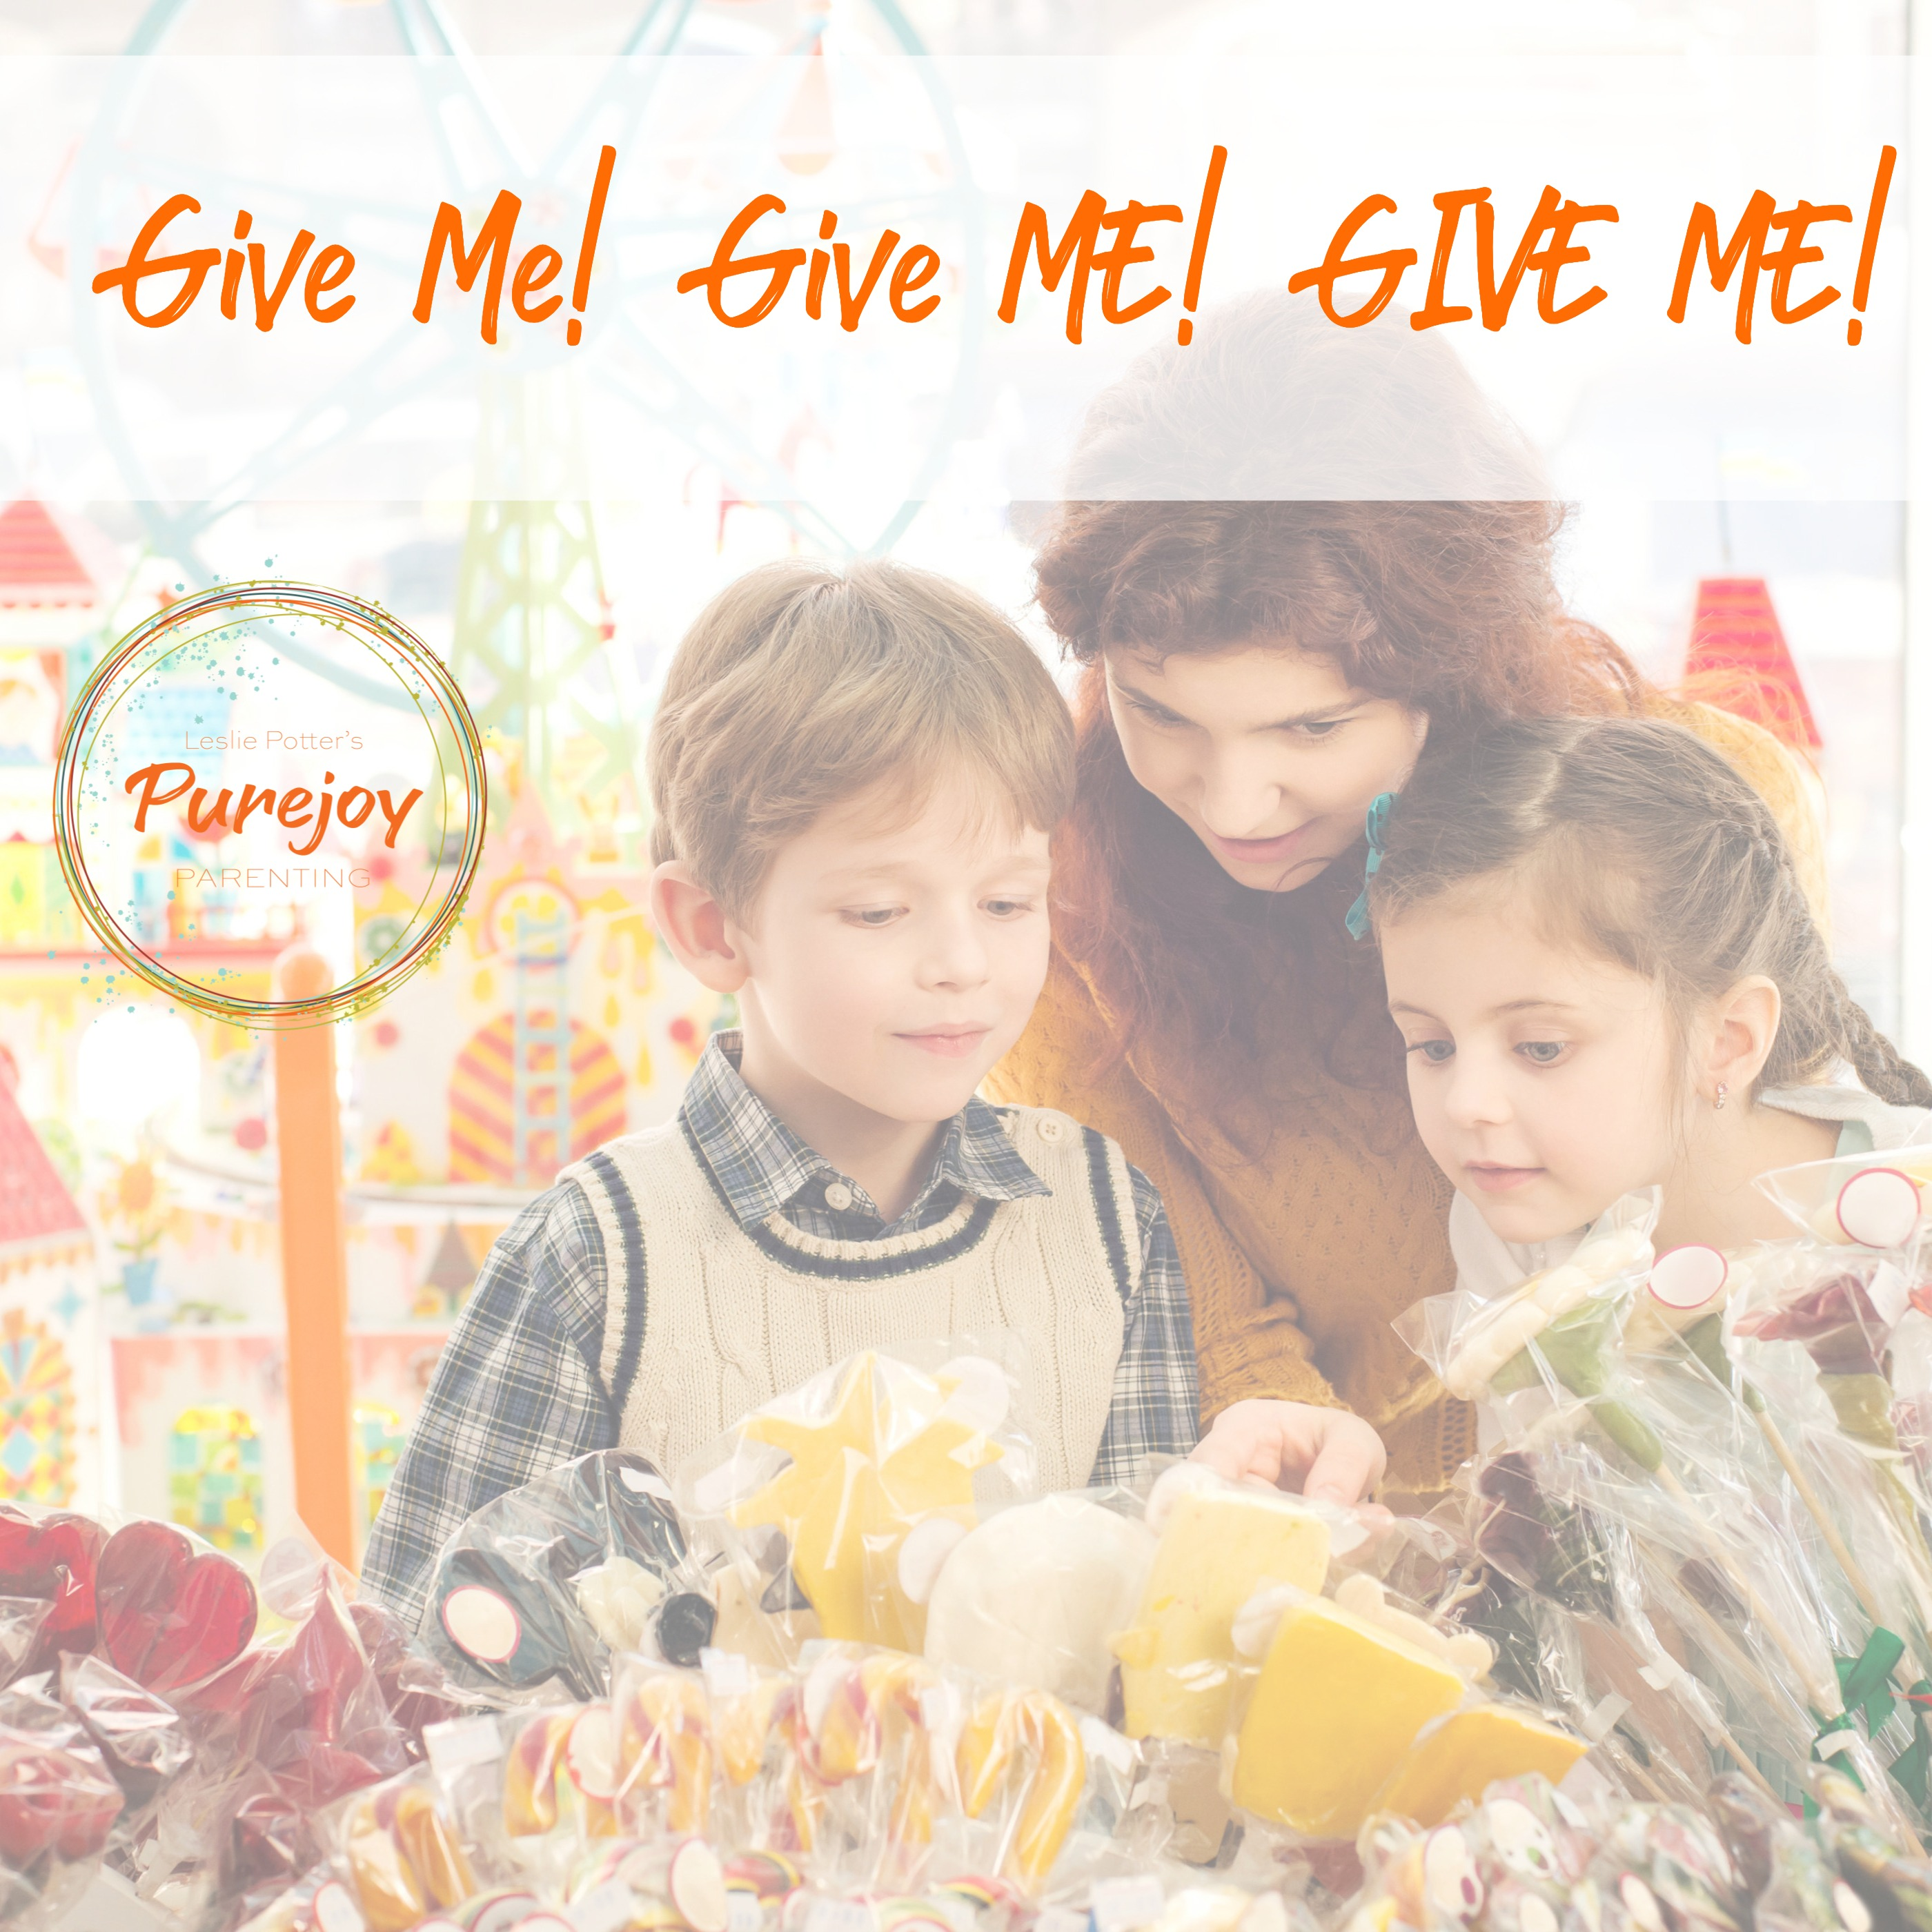 Purejoy Parenting PopUp Call: Give Me! Give Me! Give Me!